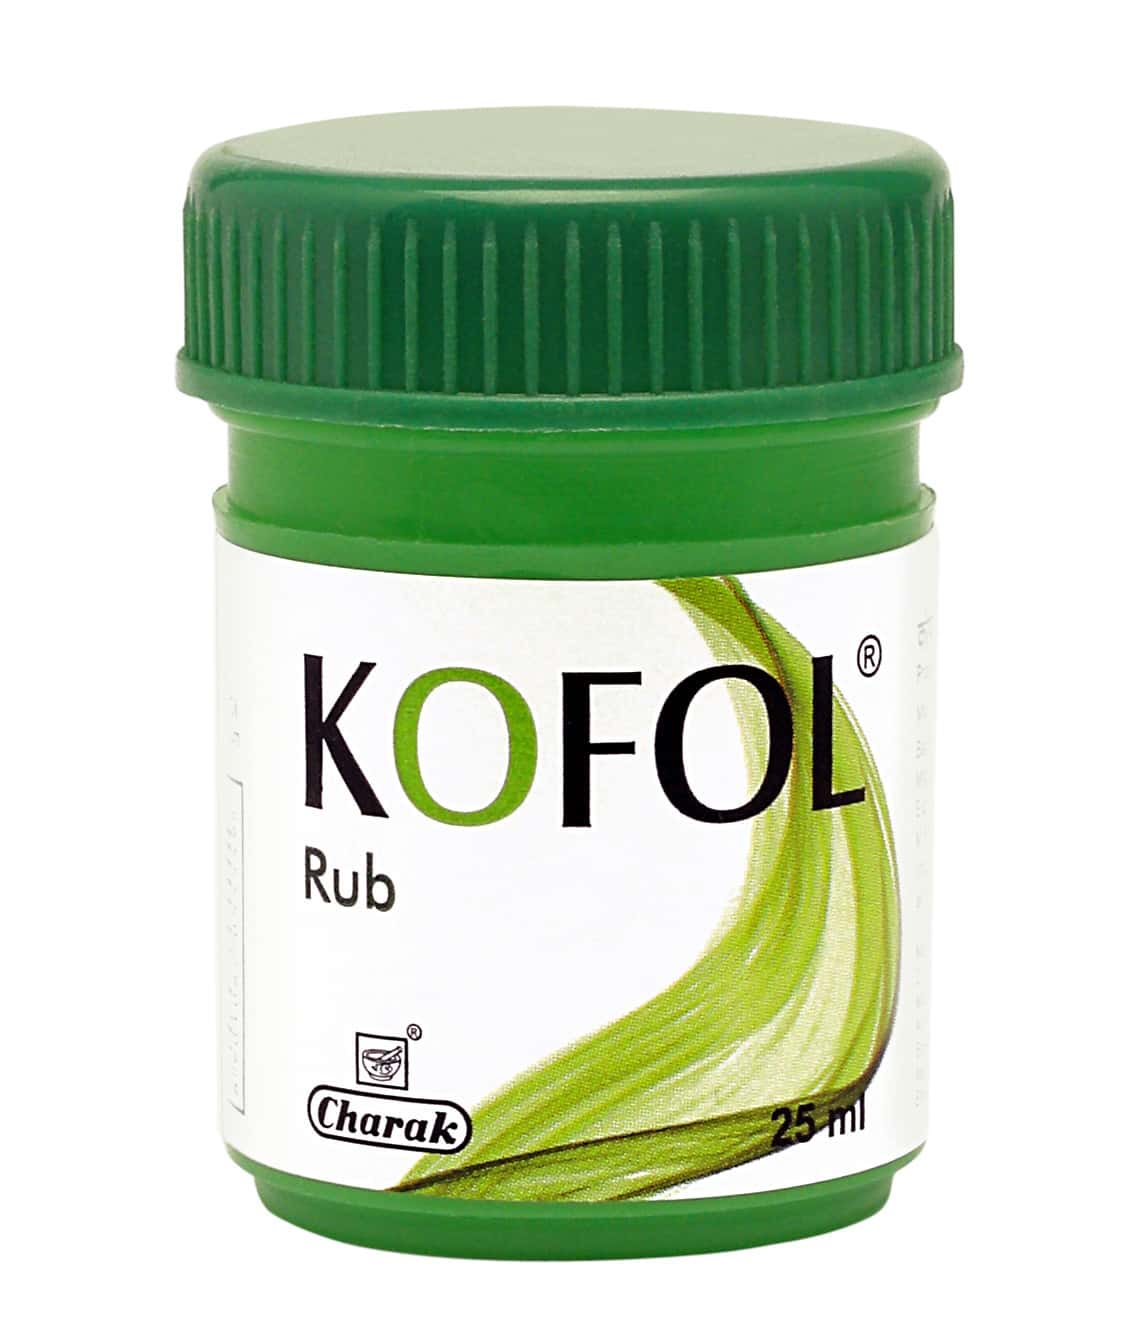 Kofol Rub Container Of 25 Ml Balm